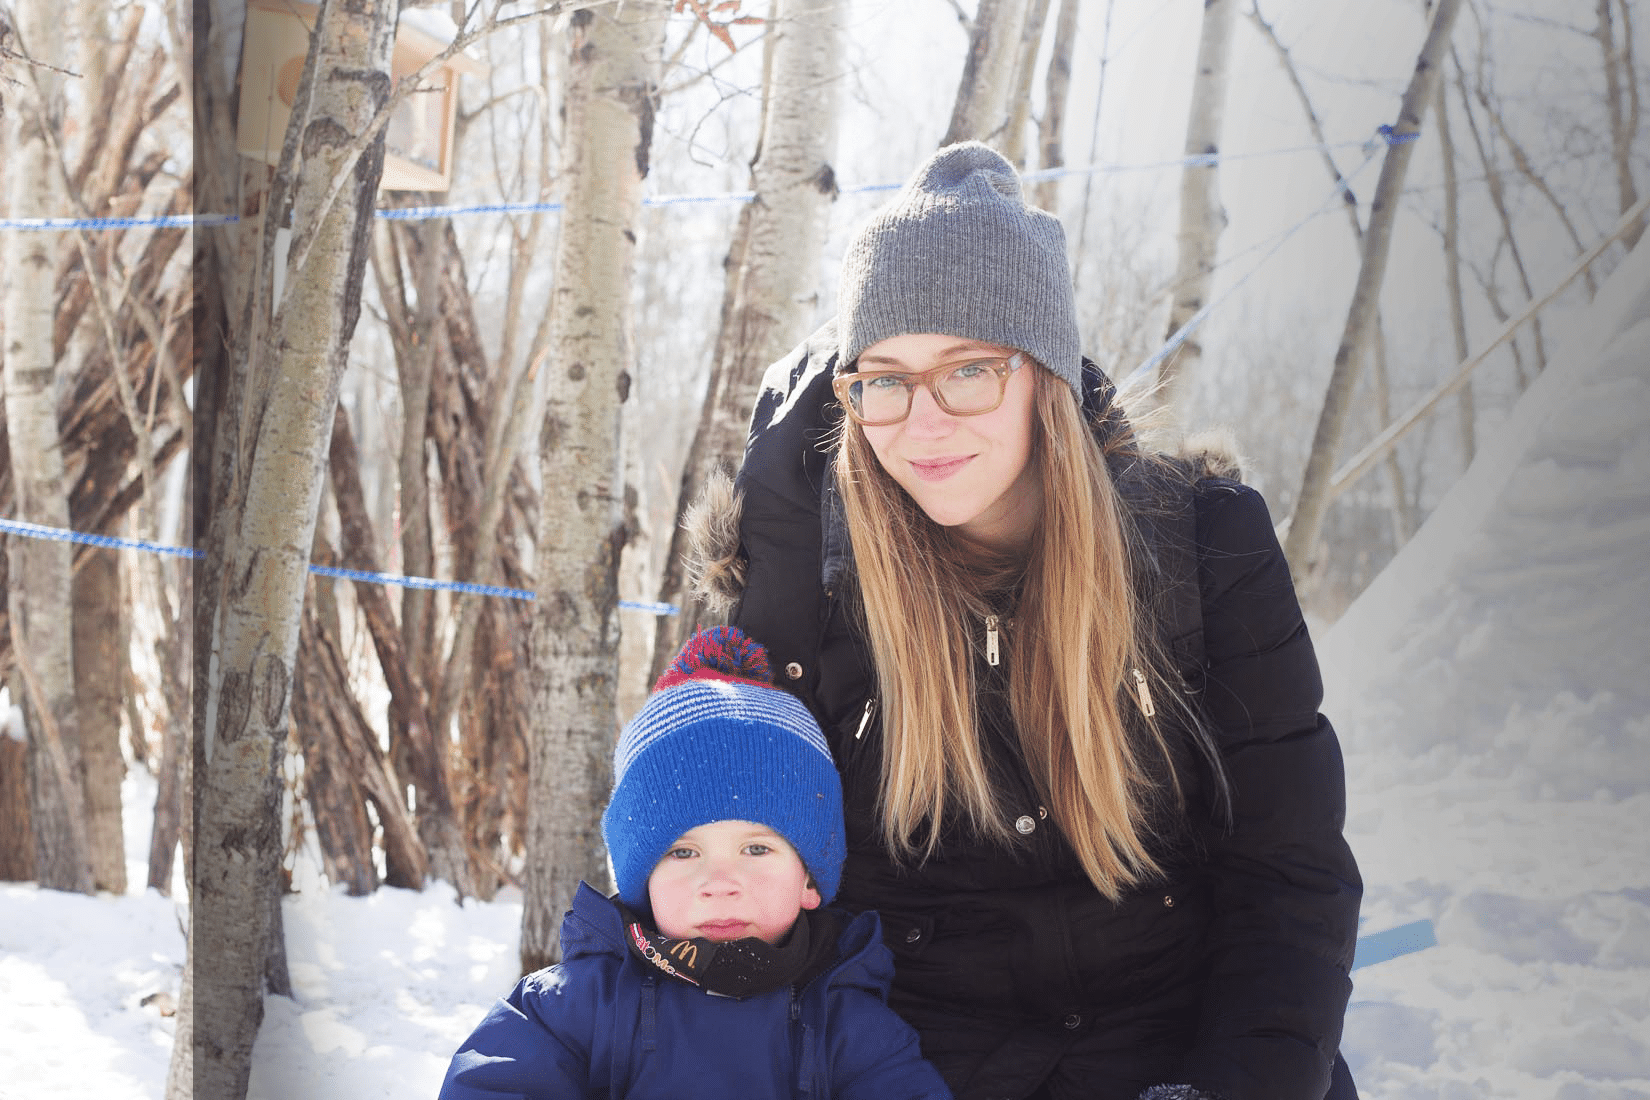 Lauren MacDiarmid and her son smiling together